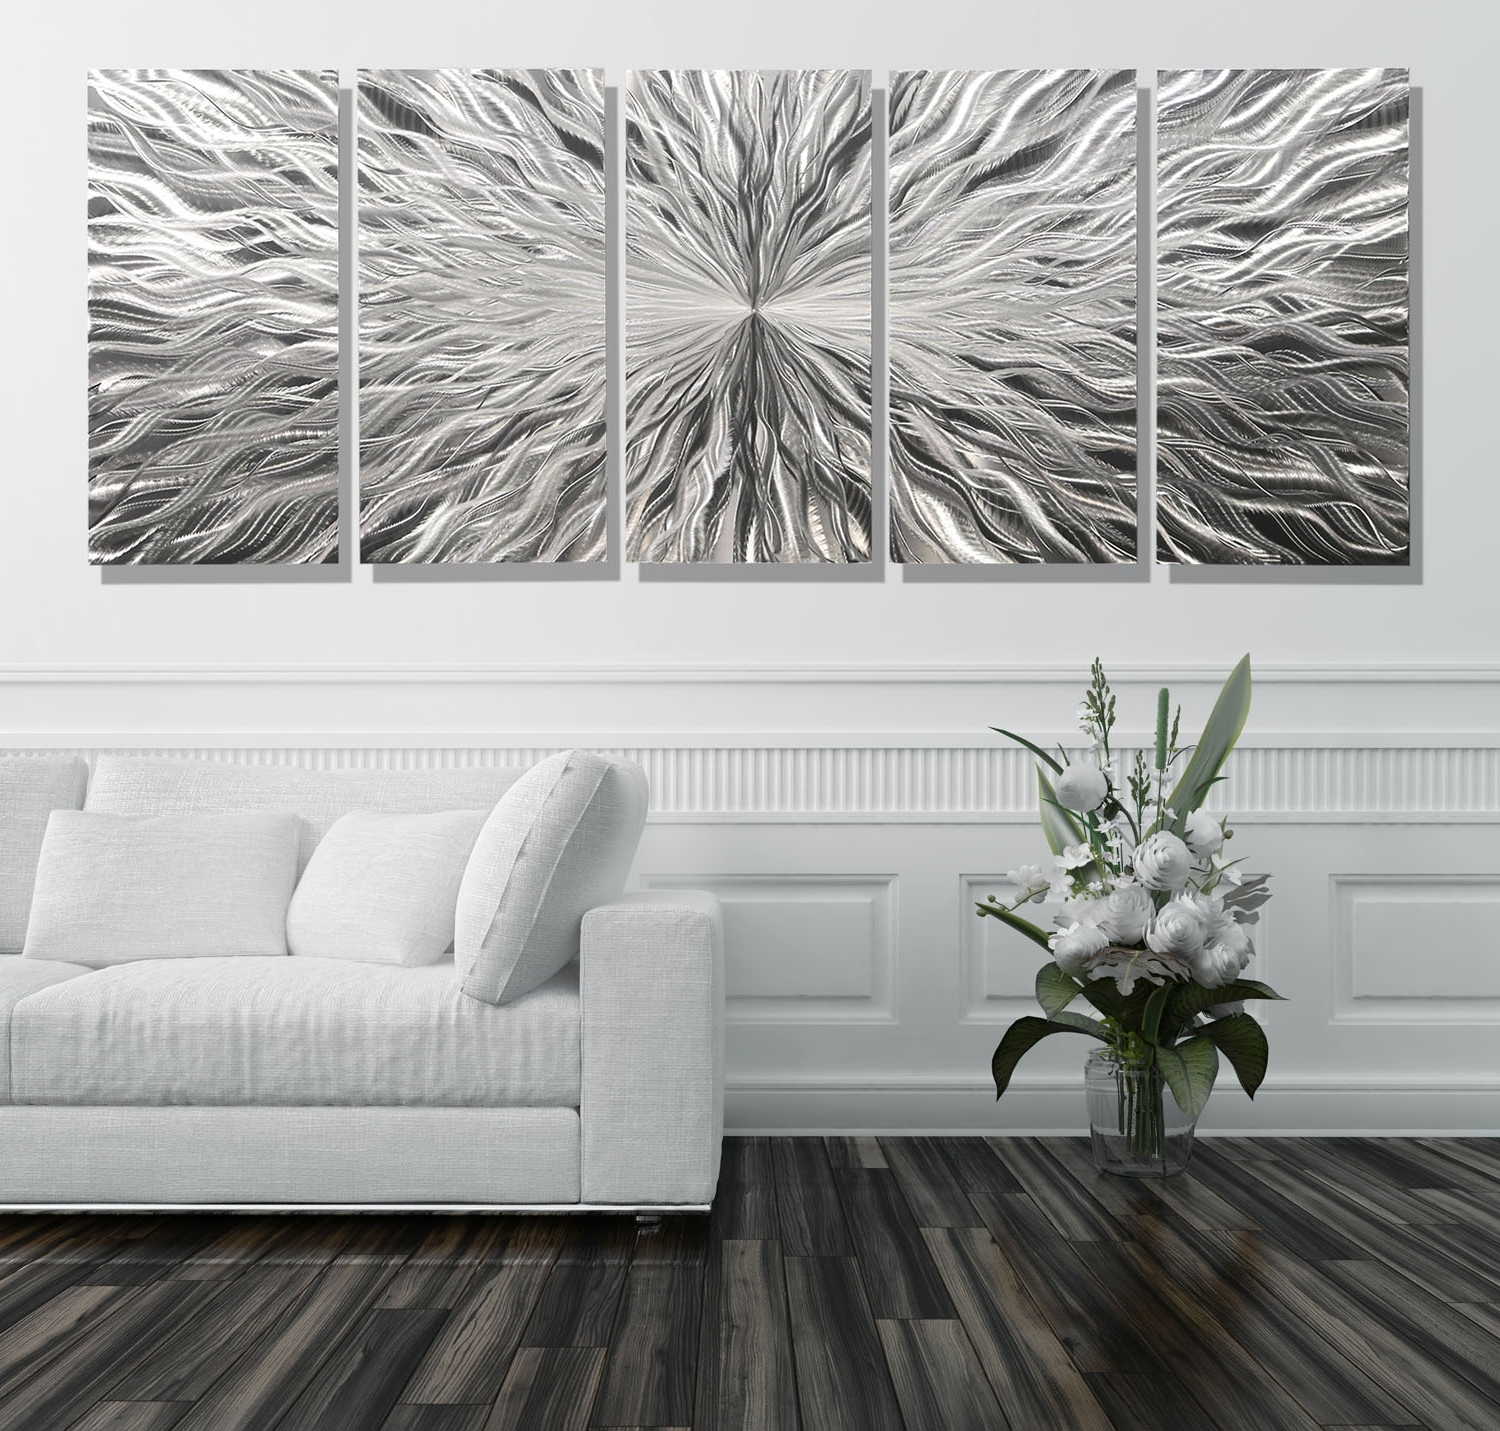 2018 Vortex 5 Xl – Extra Large 5 Panel Modern Abstract Metal Wall Art With Extra Large Wall Art (View 5 of 15)